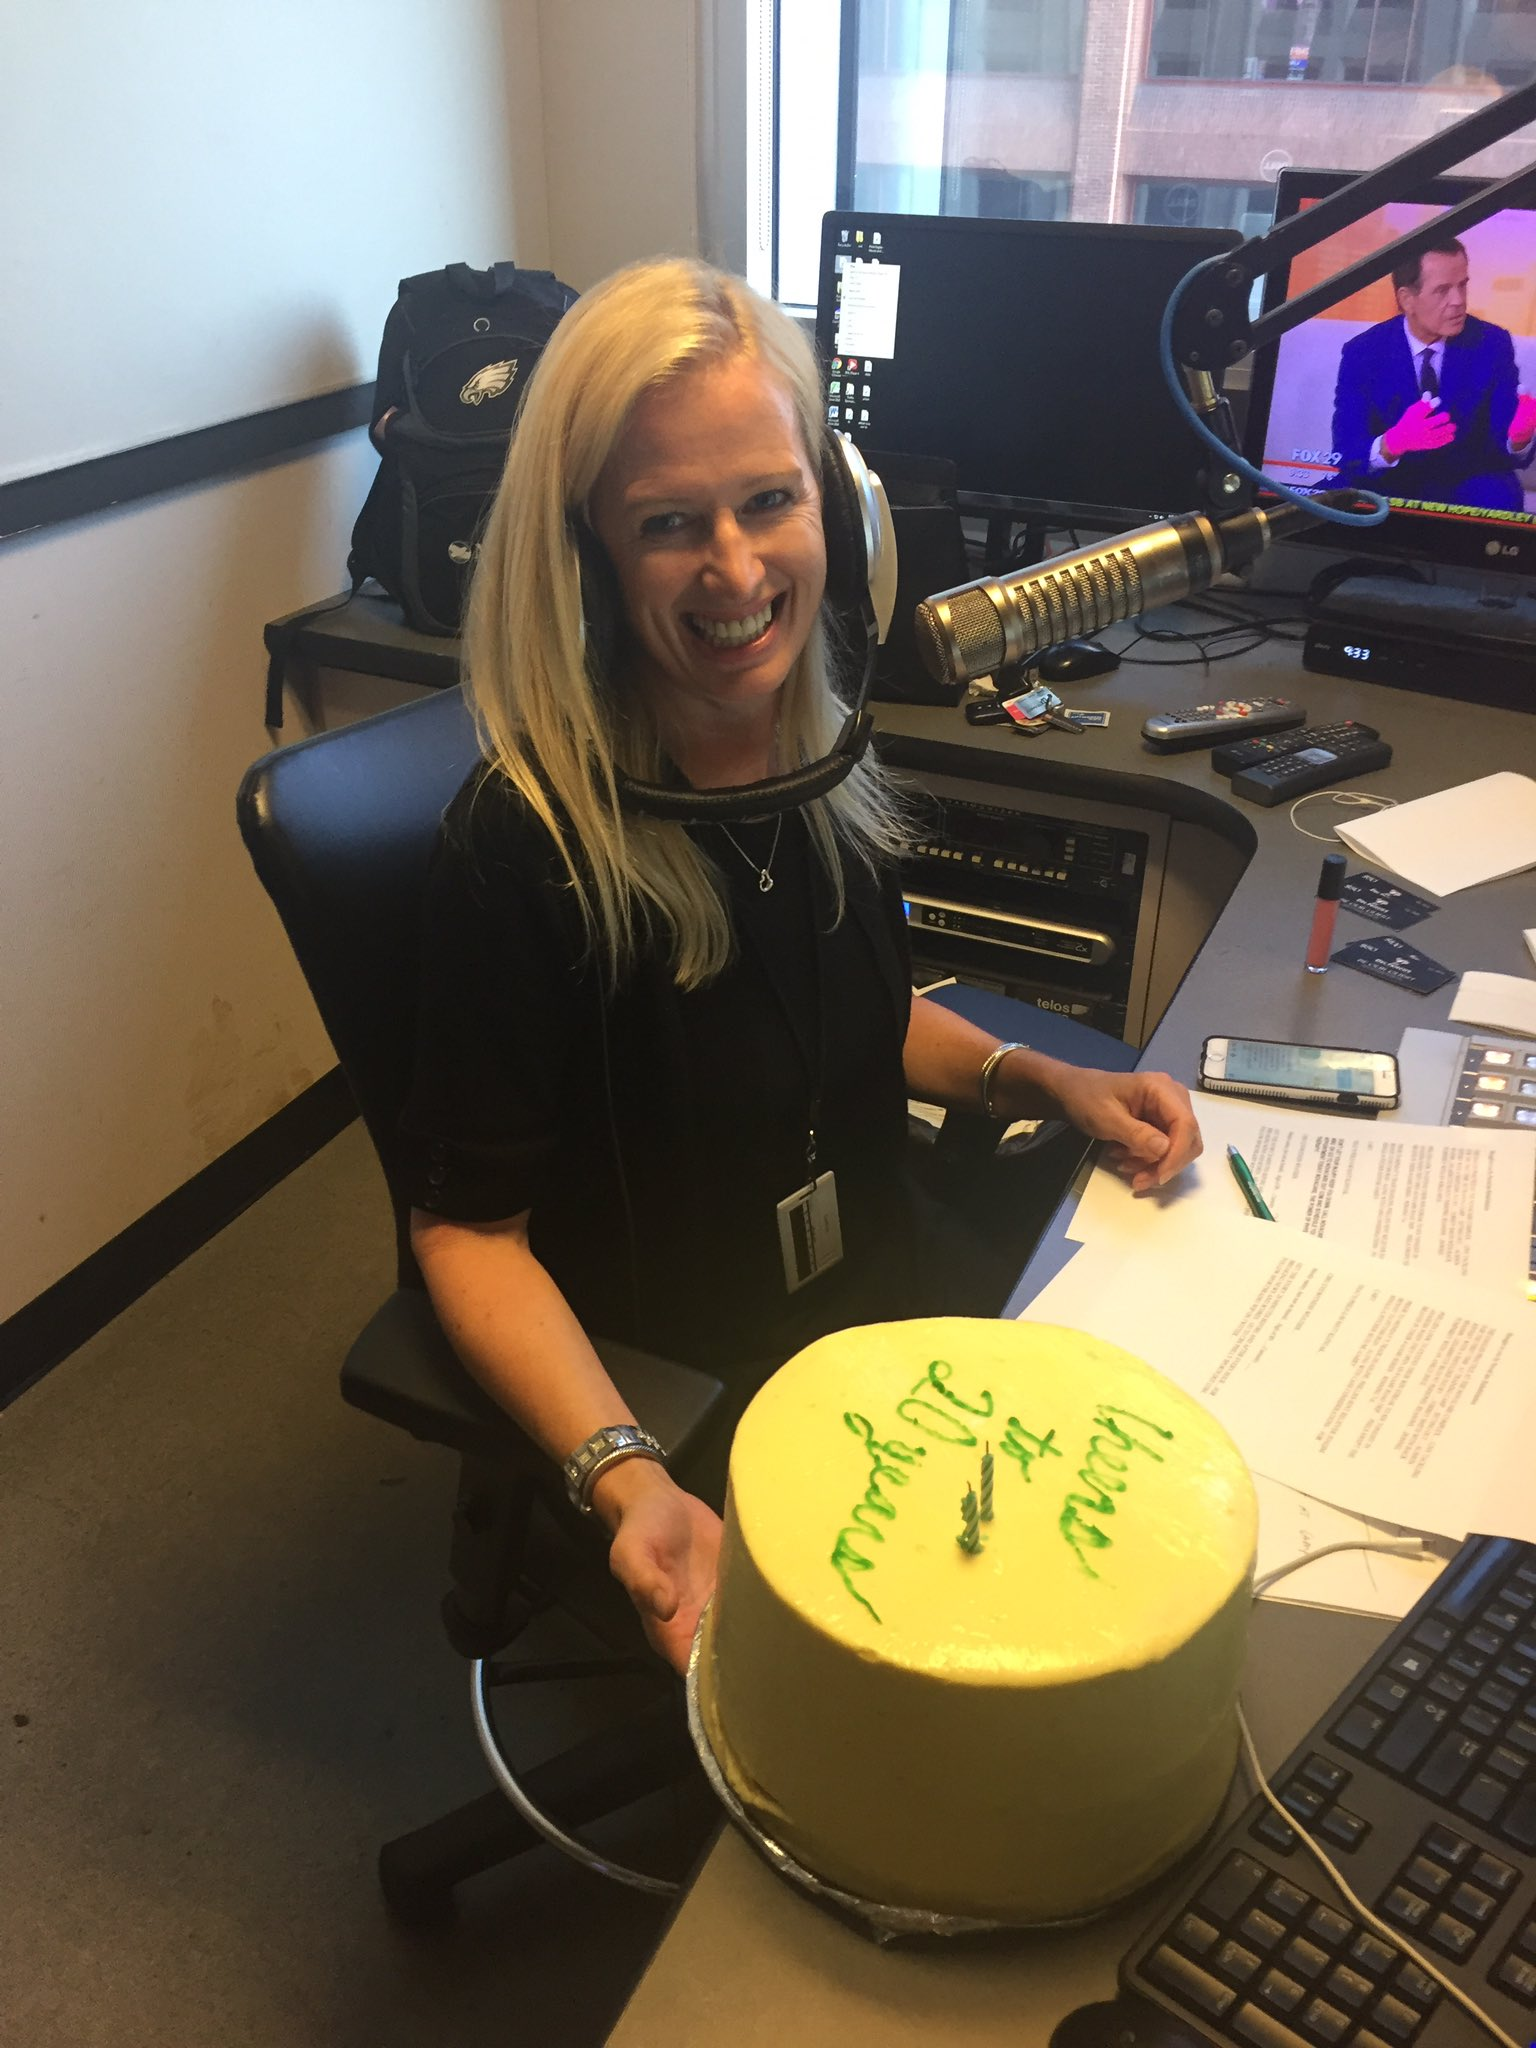 WIP Morning Show on Twitter Congrats again to Rhea Hughes for 20 years with the WIP Morning